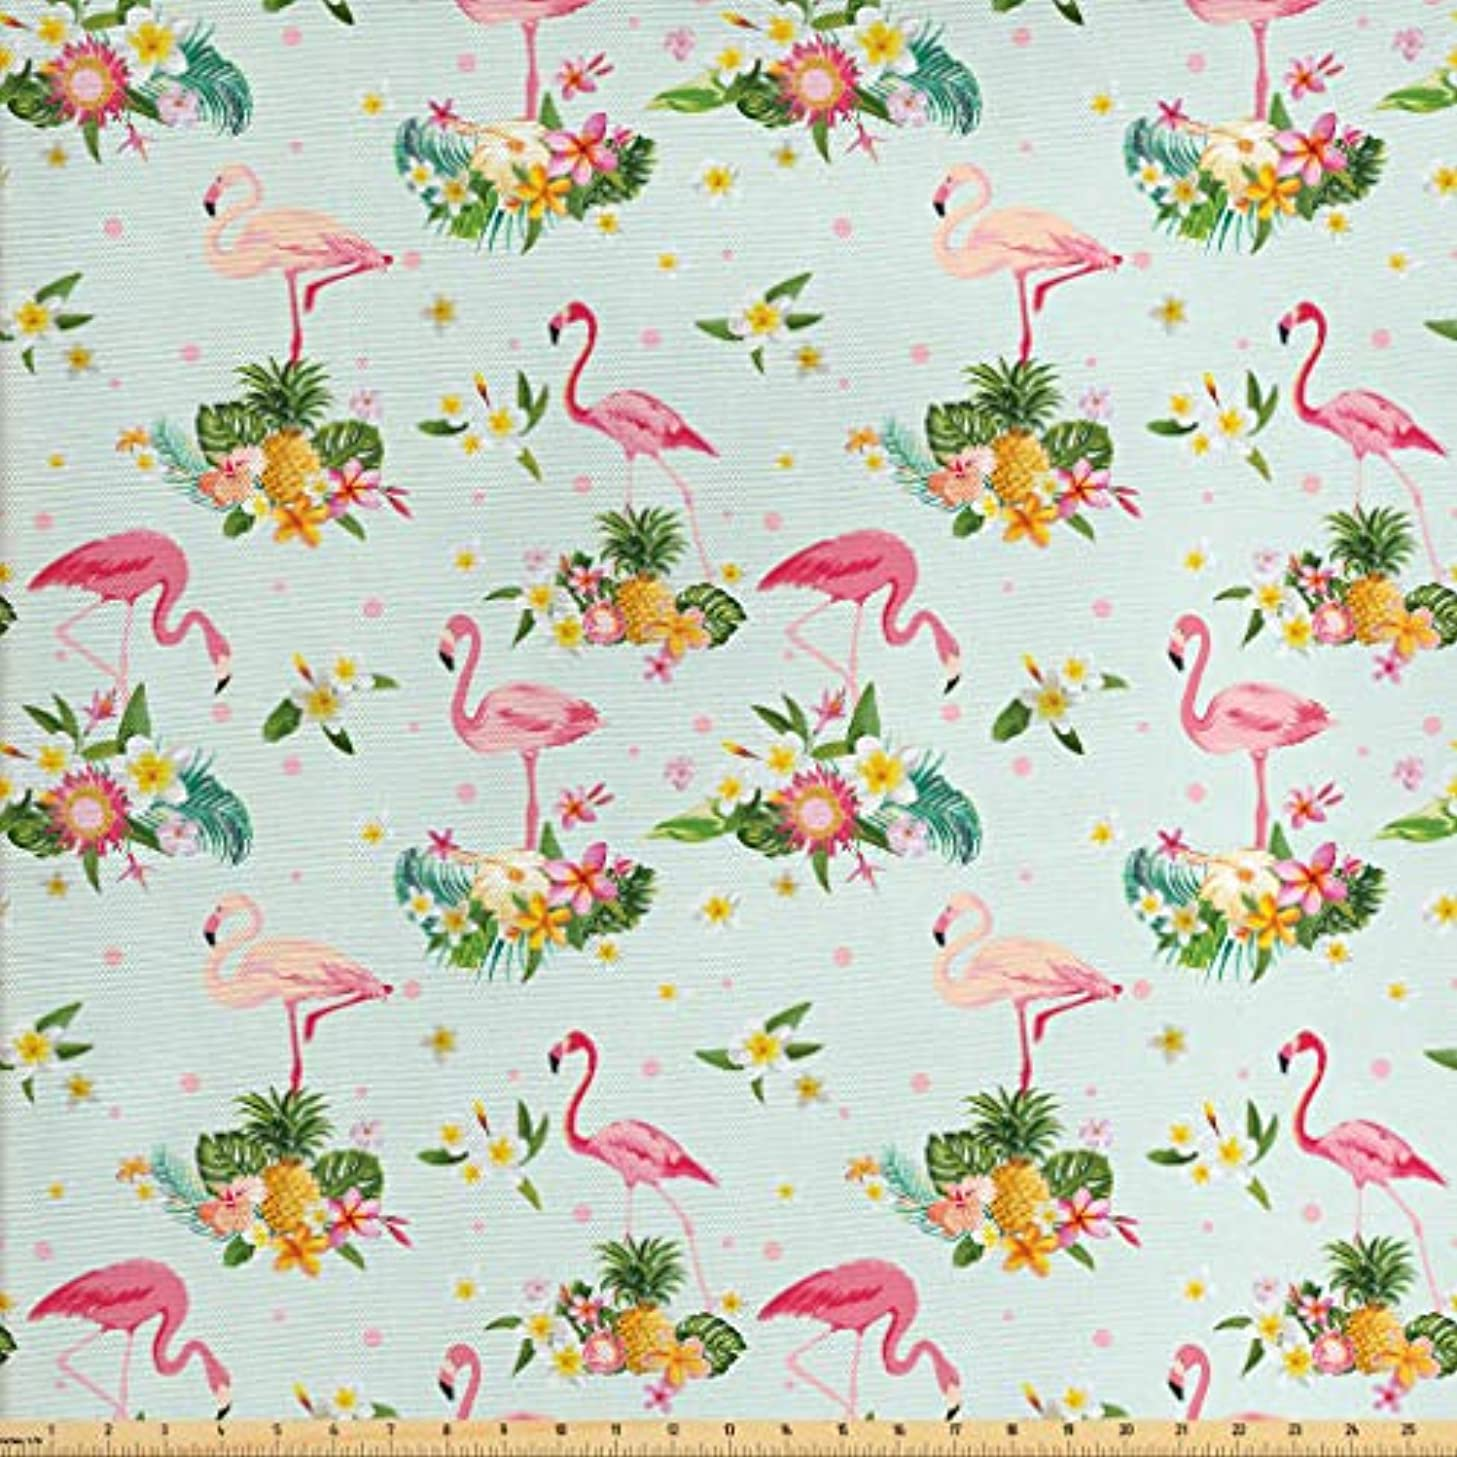 Lunarable Flamingo Fabric by The Yard, Flamingo Bird Tropical Flowers Fruits Pineapples Vintage Style Artwork, Decorative Fabric for Upholstery and Home Accents, 2 Yards, Yellow Green Pale Pink